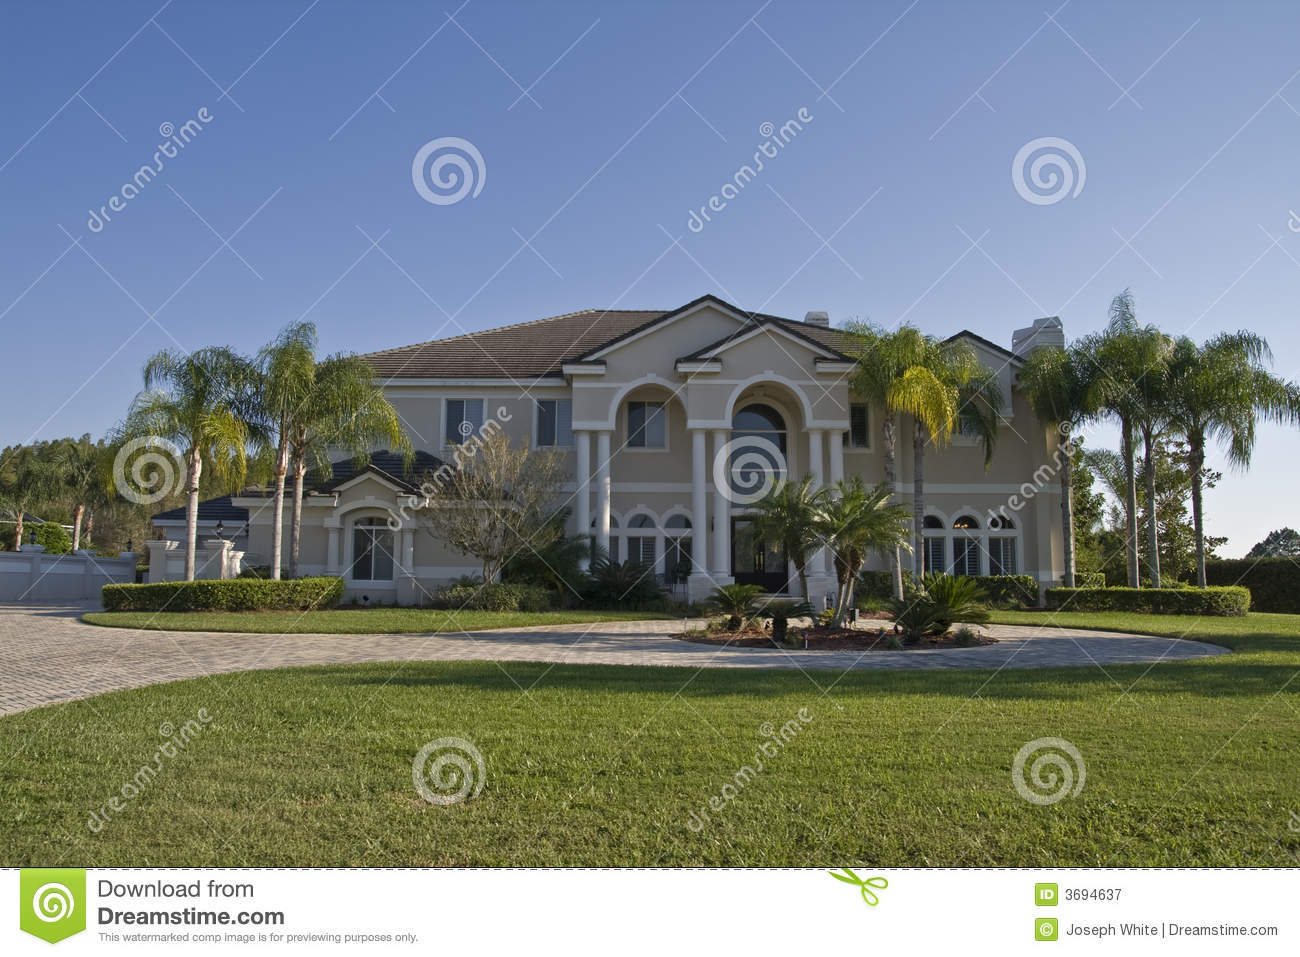 Beach house plans beach home plans beach house plan - Fancy House Royalty Free Stock Photography Image 3694637